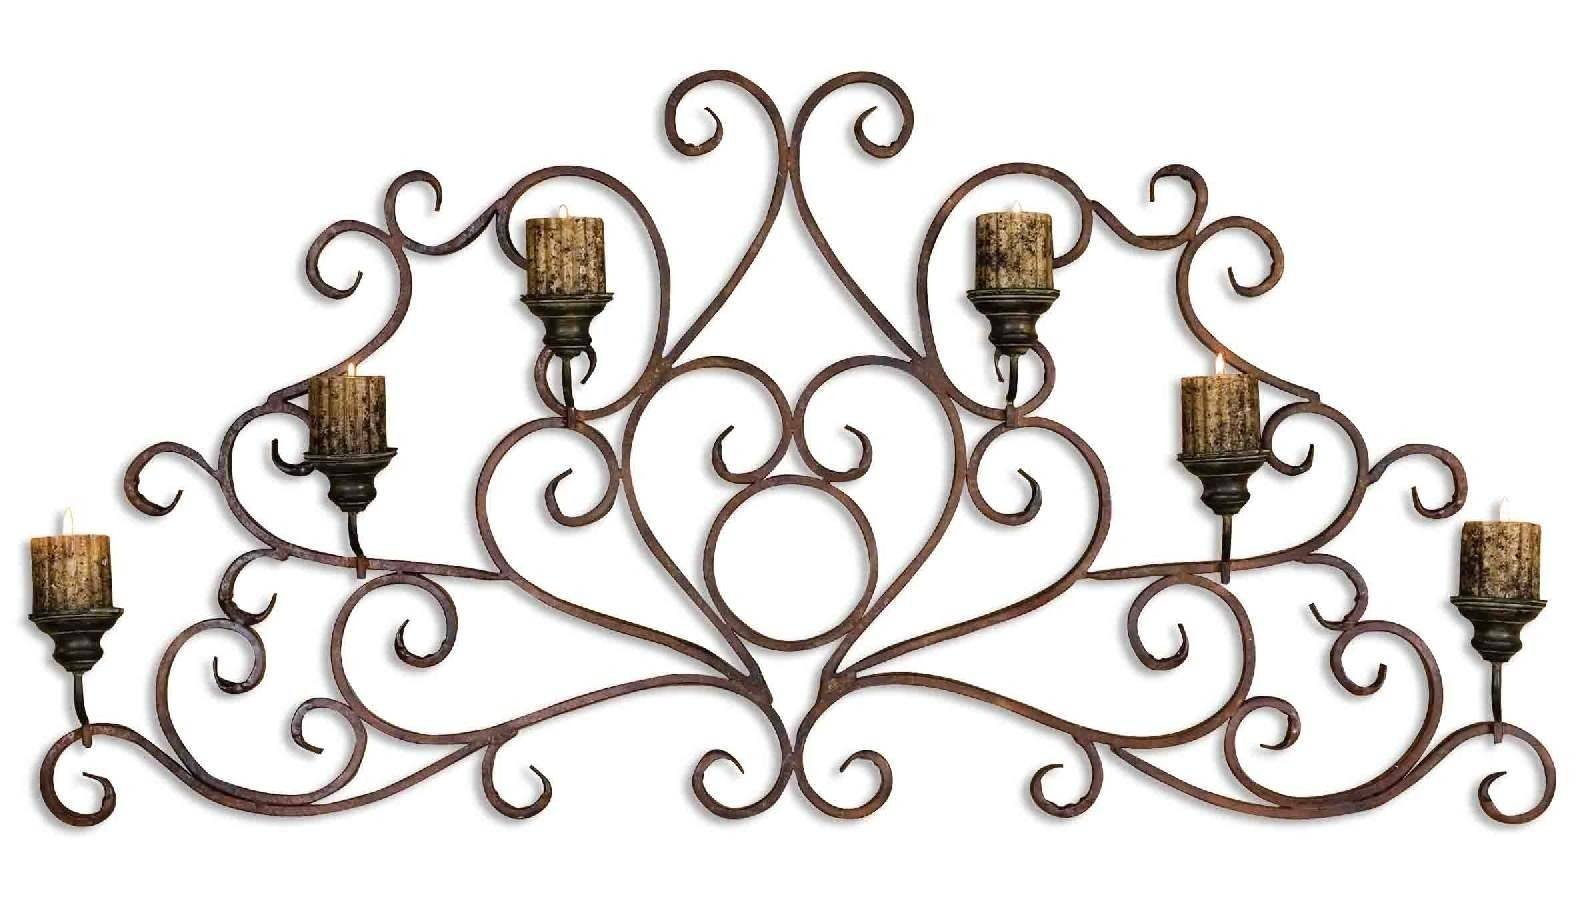 Uttermost Juliana Metal Wall Art Sconce | Rug Super Center Intended For 2017 Uttermost Metal Wall Art (View 17 of 20)